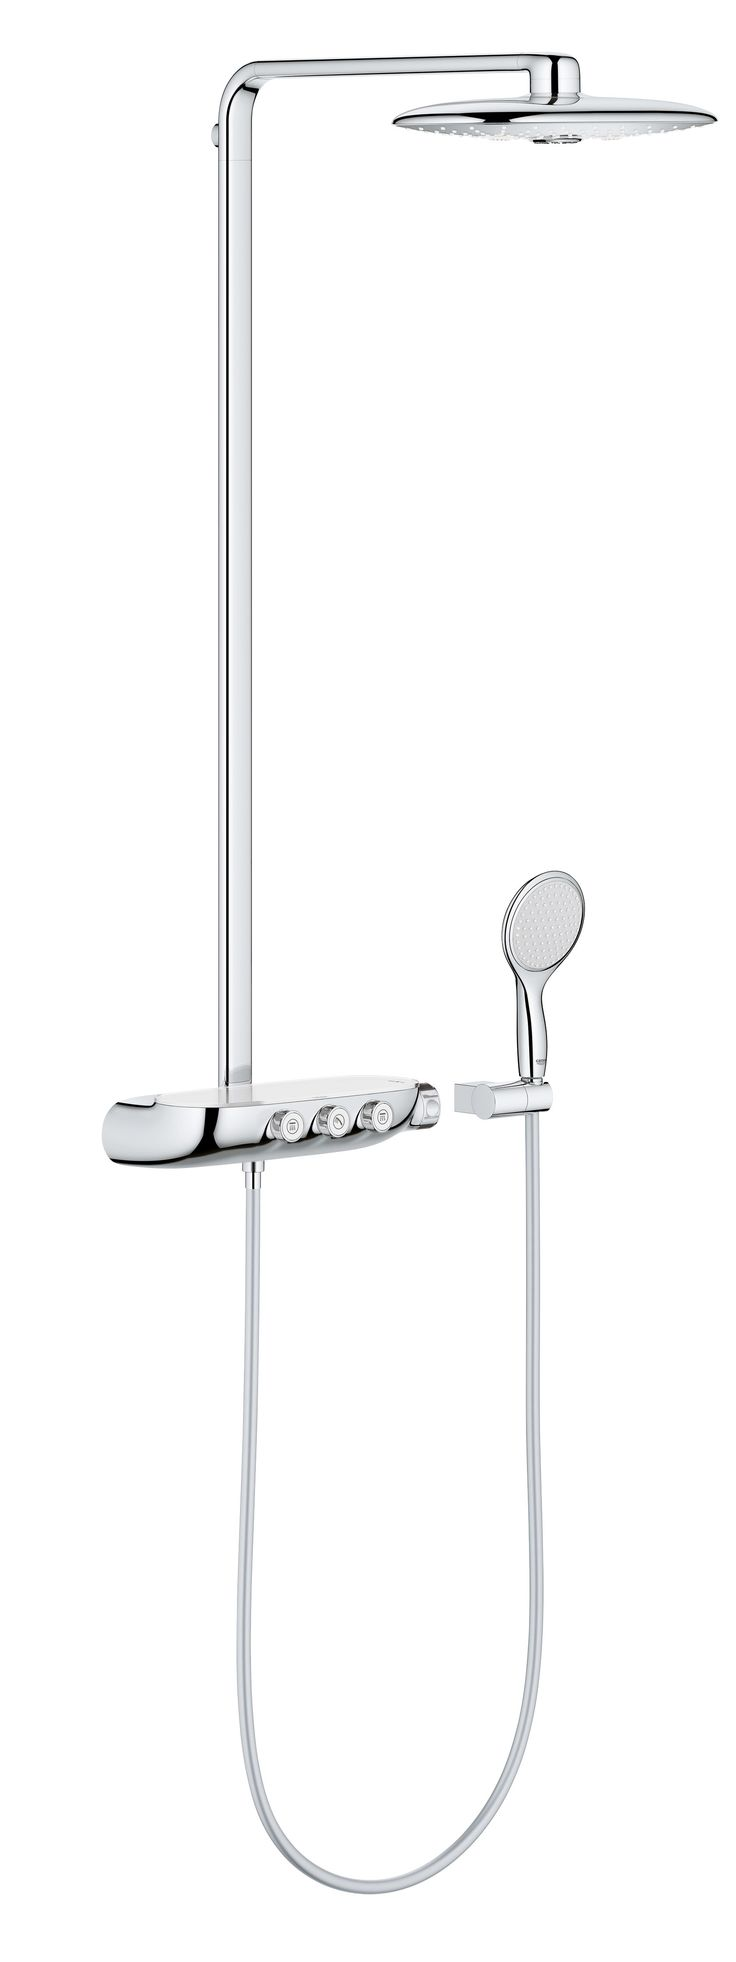 GROHE's Rainshower now comes with SmartControl, an innovative design that lets you personalise your shower experience and control it with a single touch. #Rainshower #SmartControl #bathroom http://www.grohe.co.uk/en_gb/bathroom-collection/showers-rainshower-systems.html